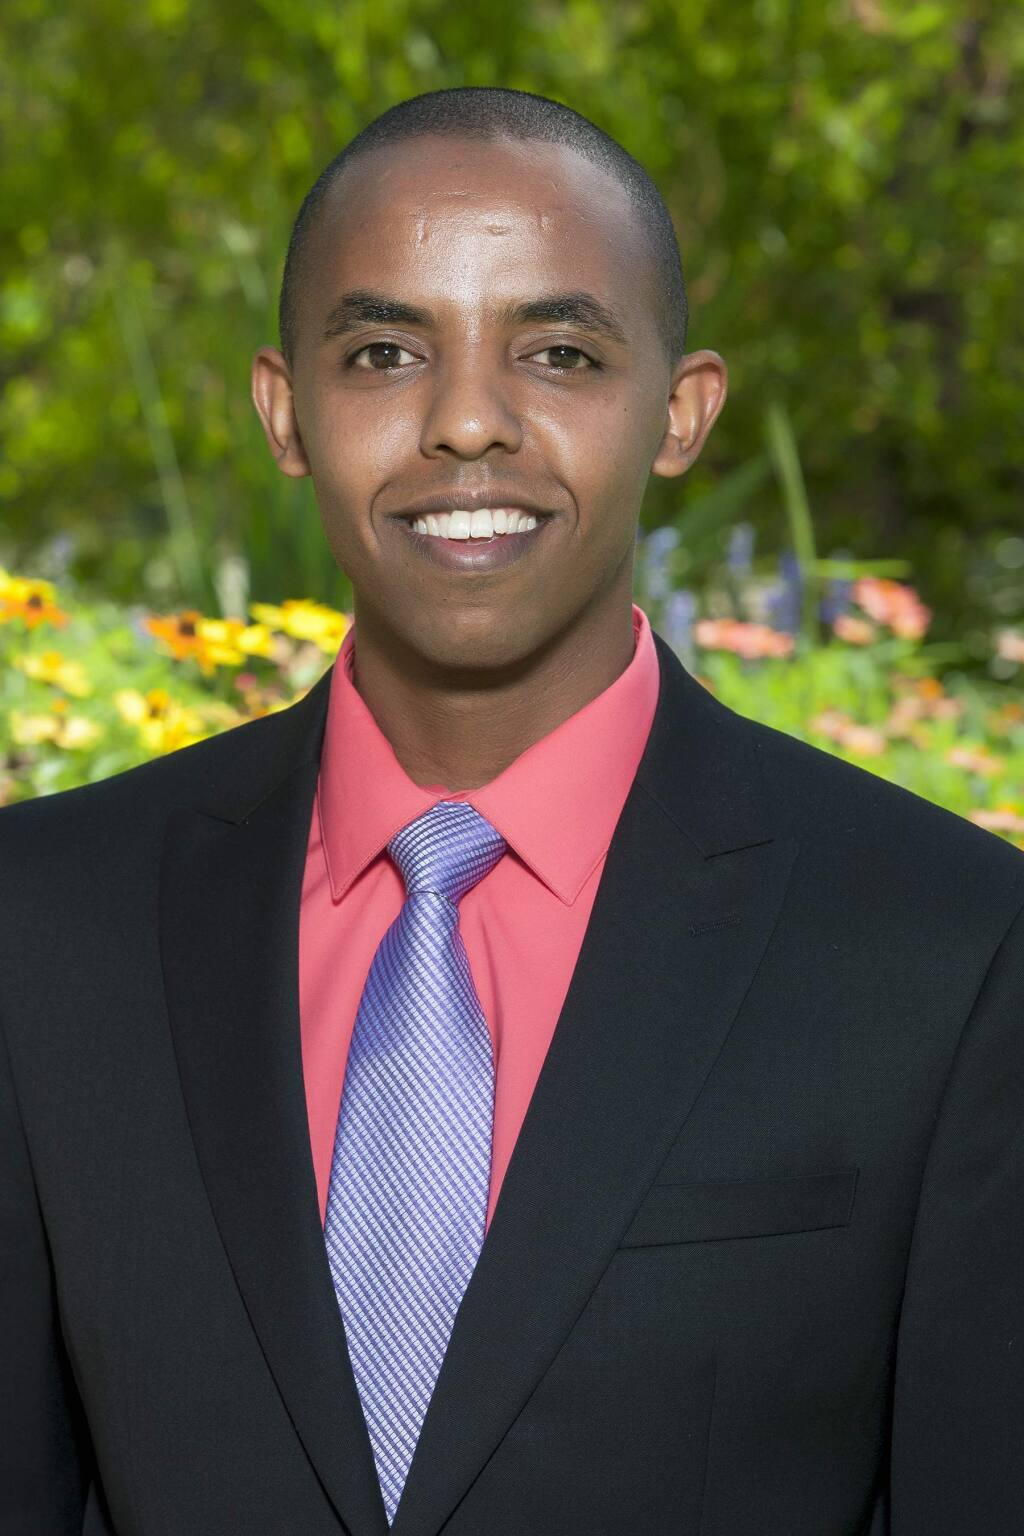 Dawit Tesfasilassie, 33, assistant administrator, Sutter Santa Rosa Regional Hospital, is a North Bay Business Journal 2019 Forty Under 40 winner. (BILL MAHON PHOTO)